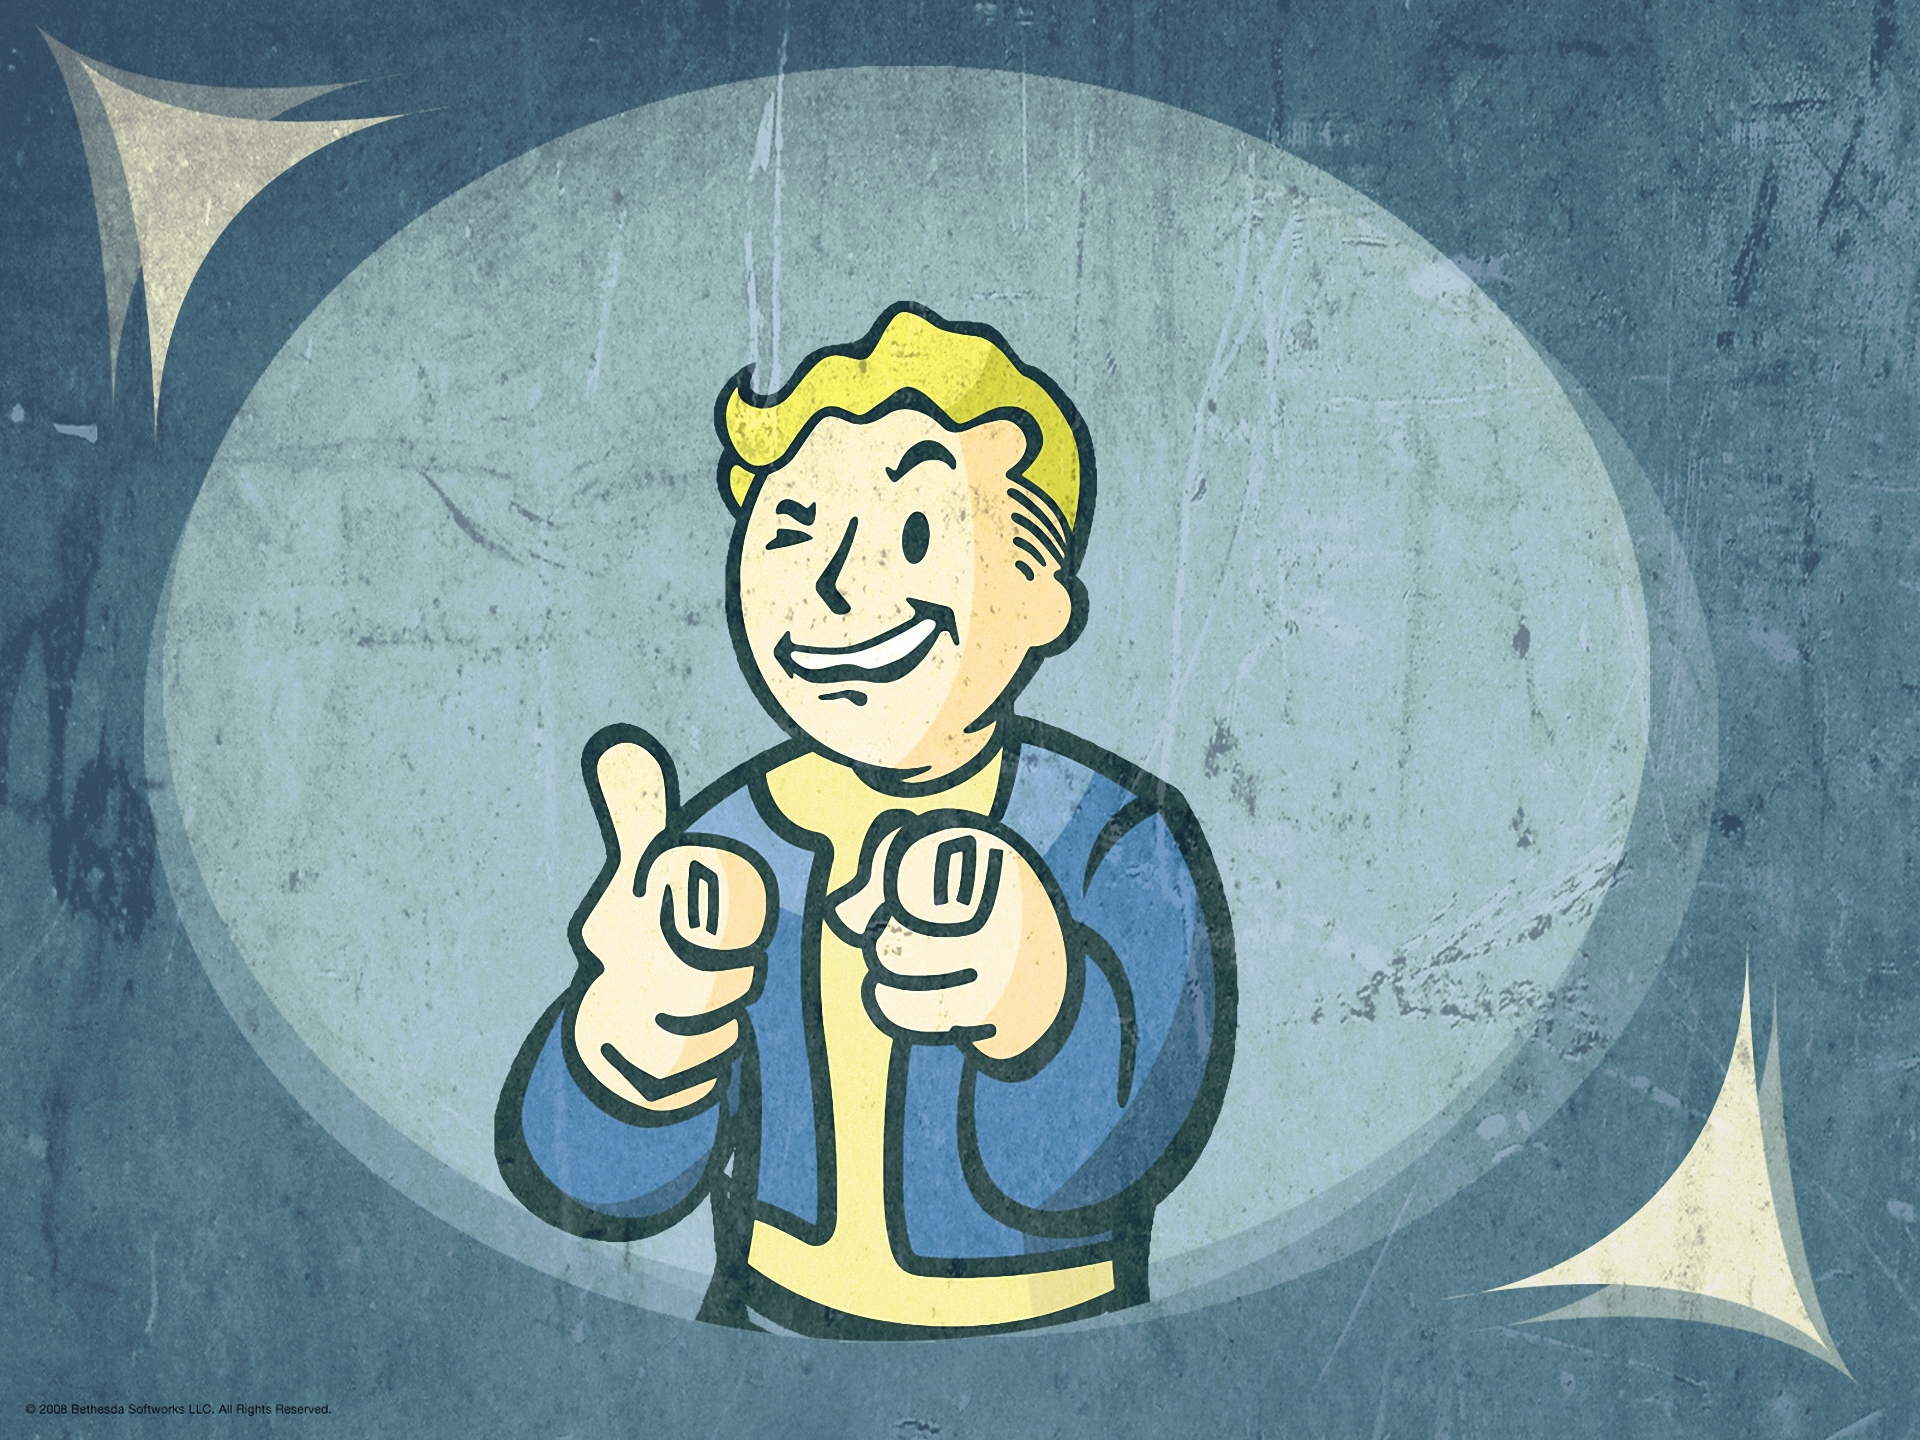 Vault Boy de Fallout llega a Rocket League